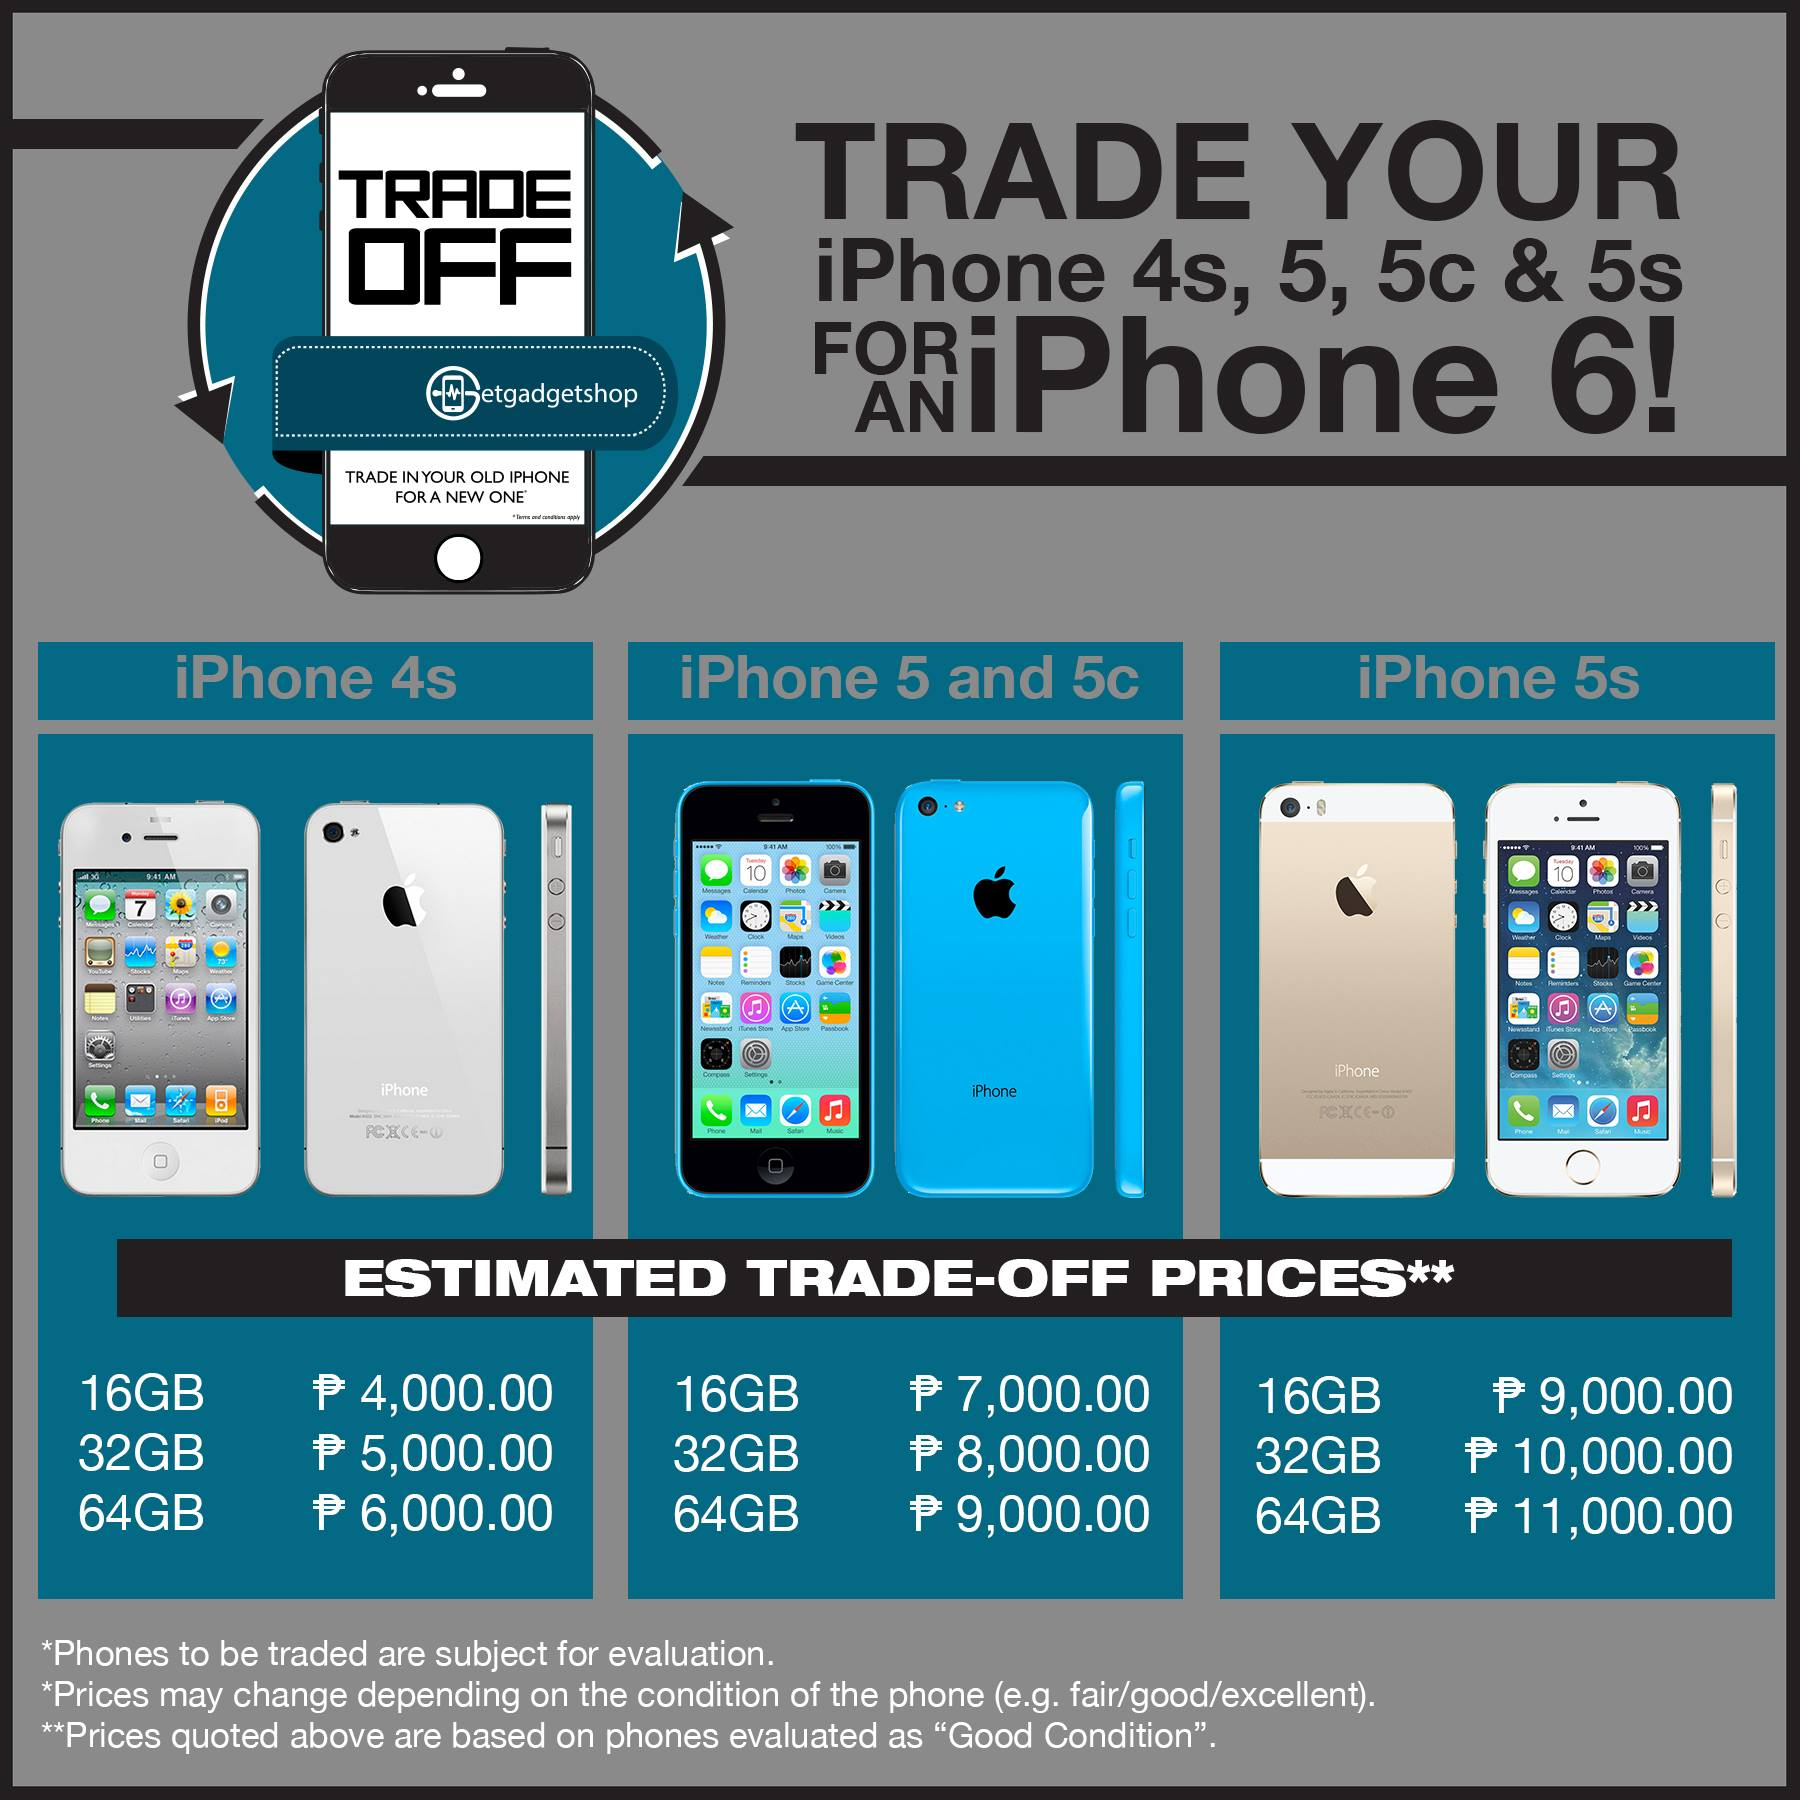 GetGadget Shop One Day Trade Off Promo Is On March 31